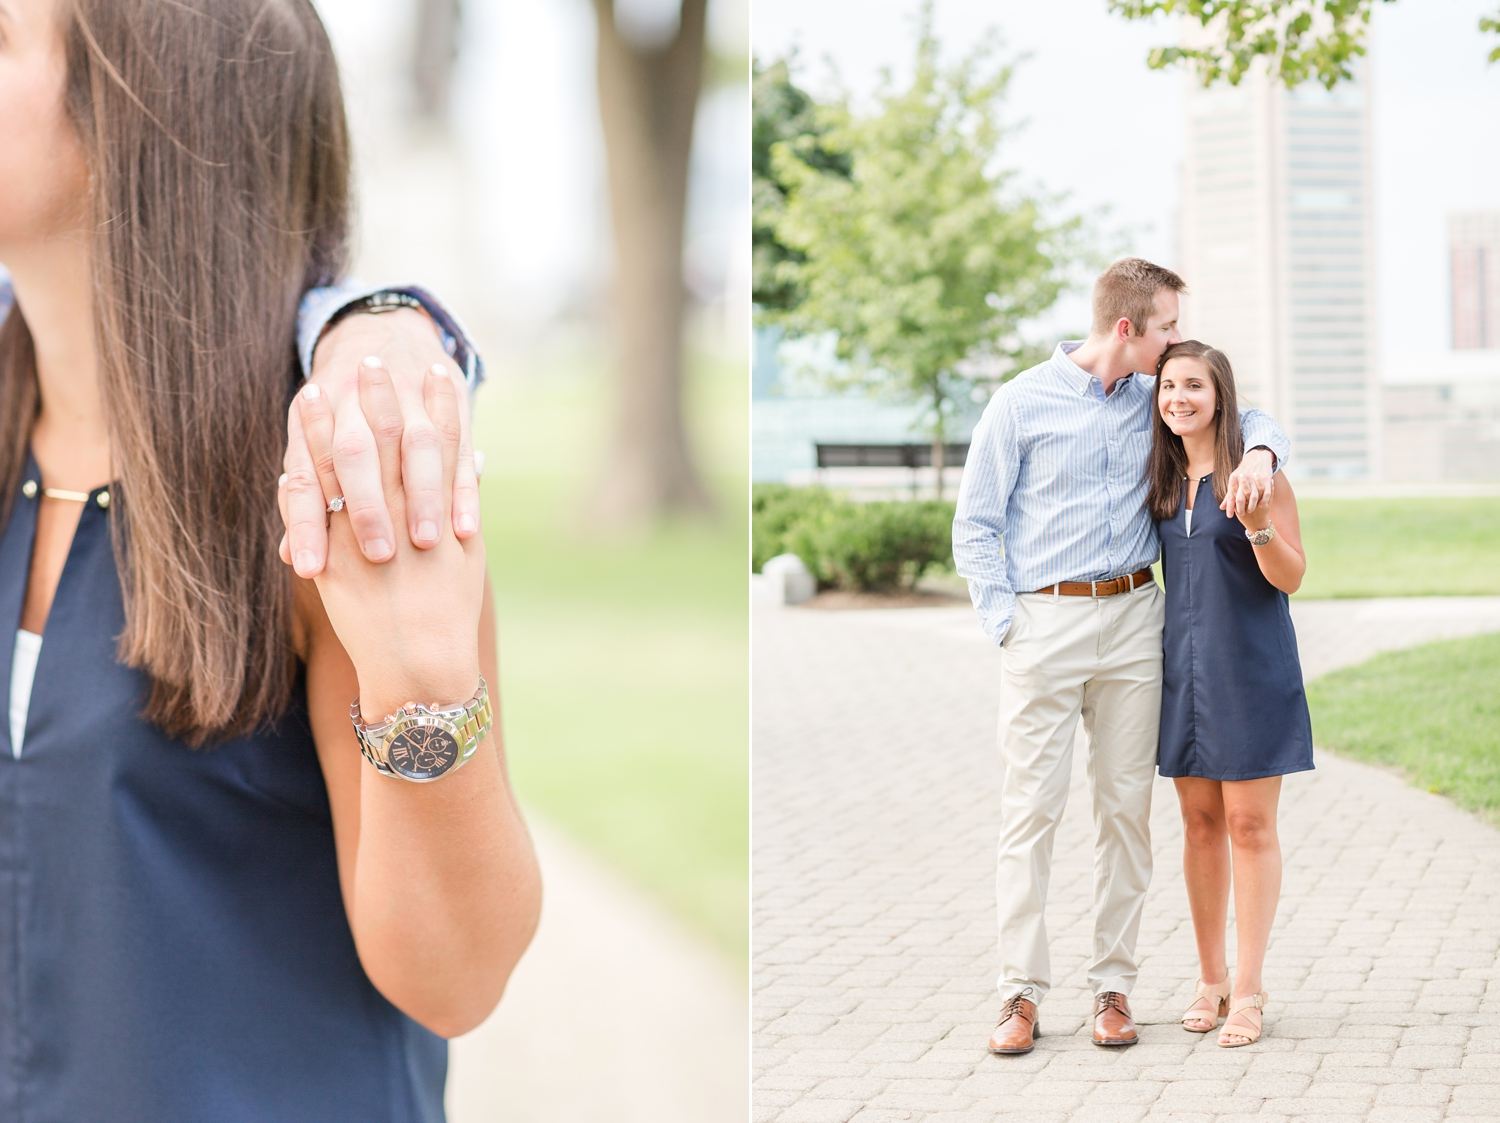 Jamie Wood & Daniel Schindler Engagement-85_Downtown-Baltimore-Maryland-engagement-photographer-anna-grace-photography-photo.jpg